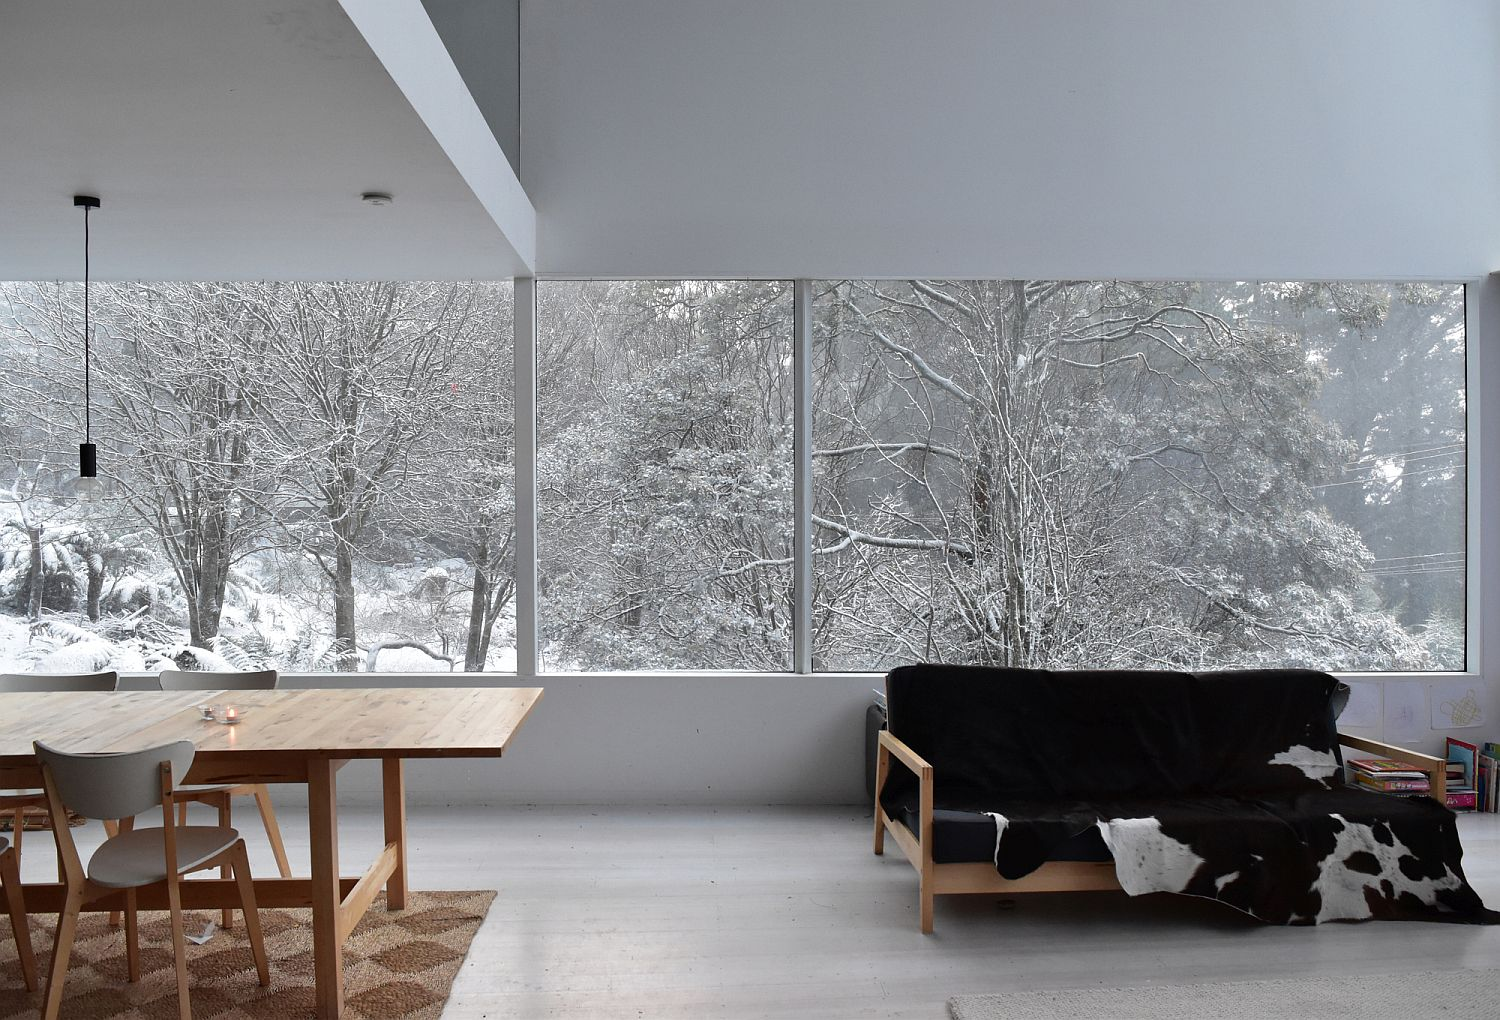 White dining space of the house with a view of the snow-clad landscape outside